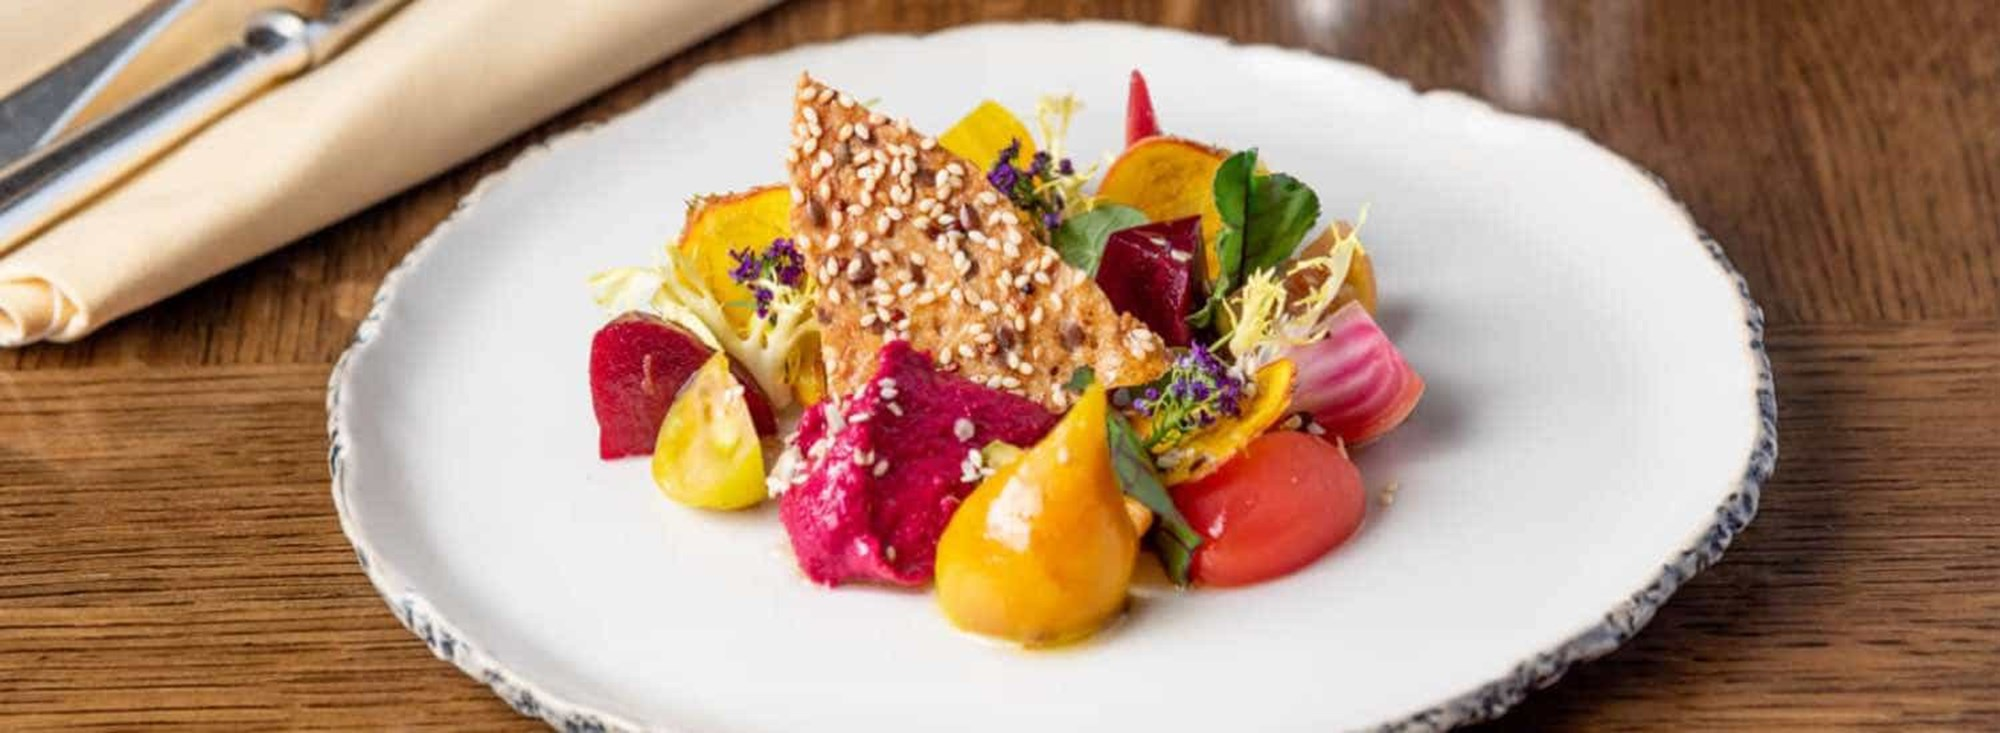 Very Colourful Mixed Beetroot Salad, Goats Curd & Beetroot Hummus